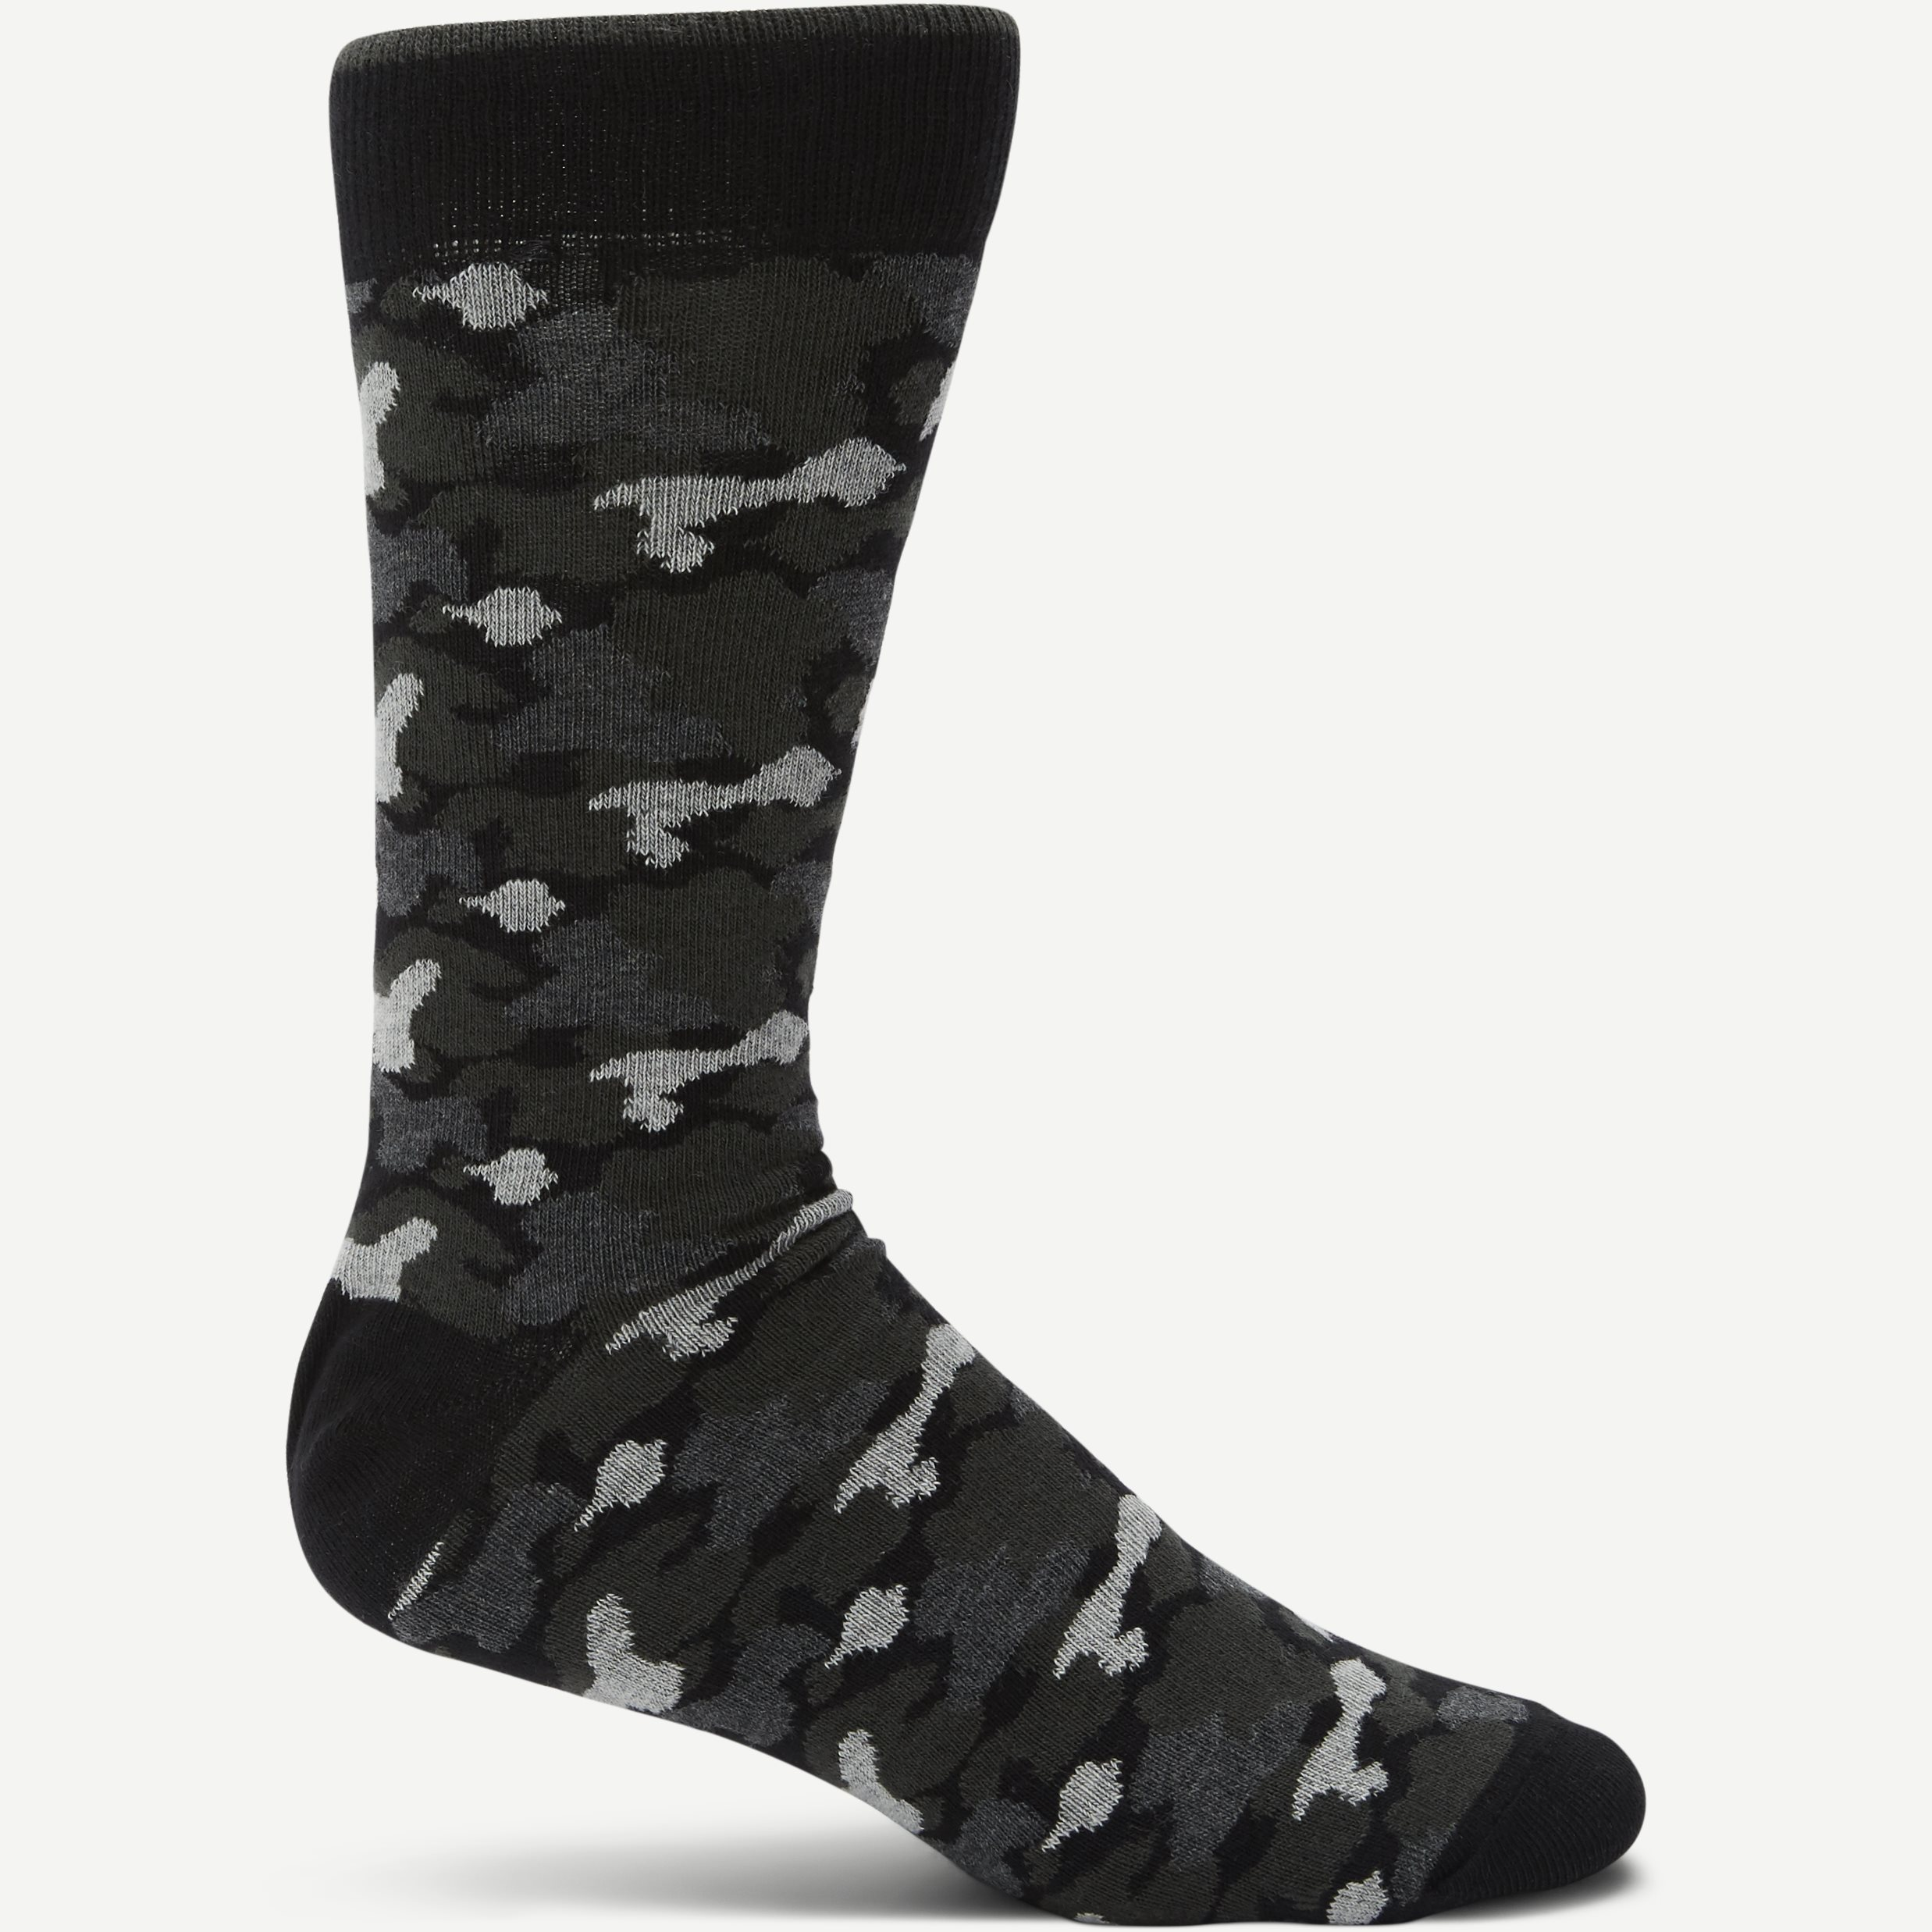 Socks - Army